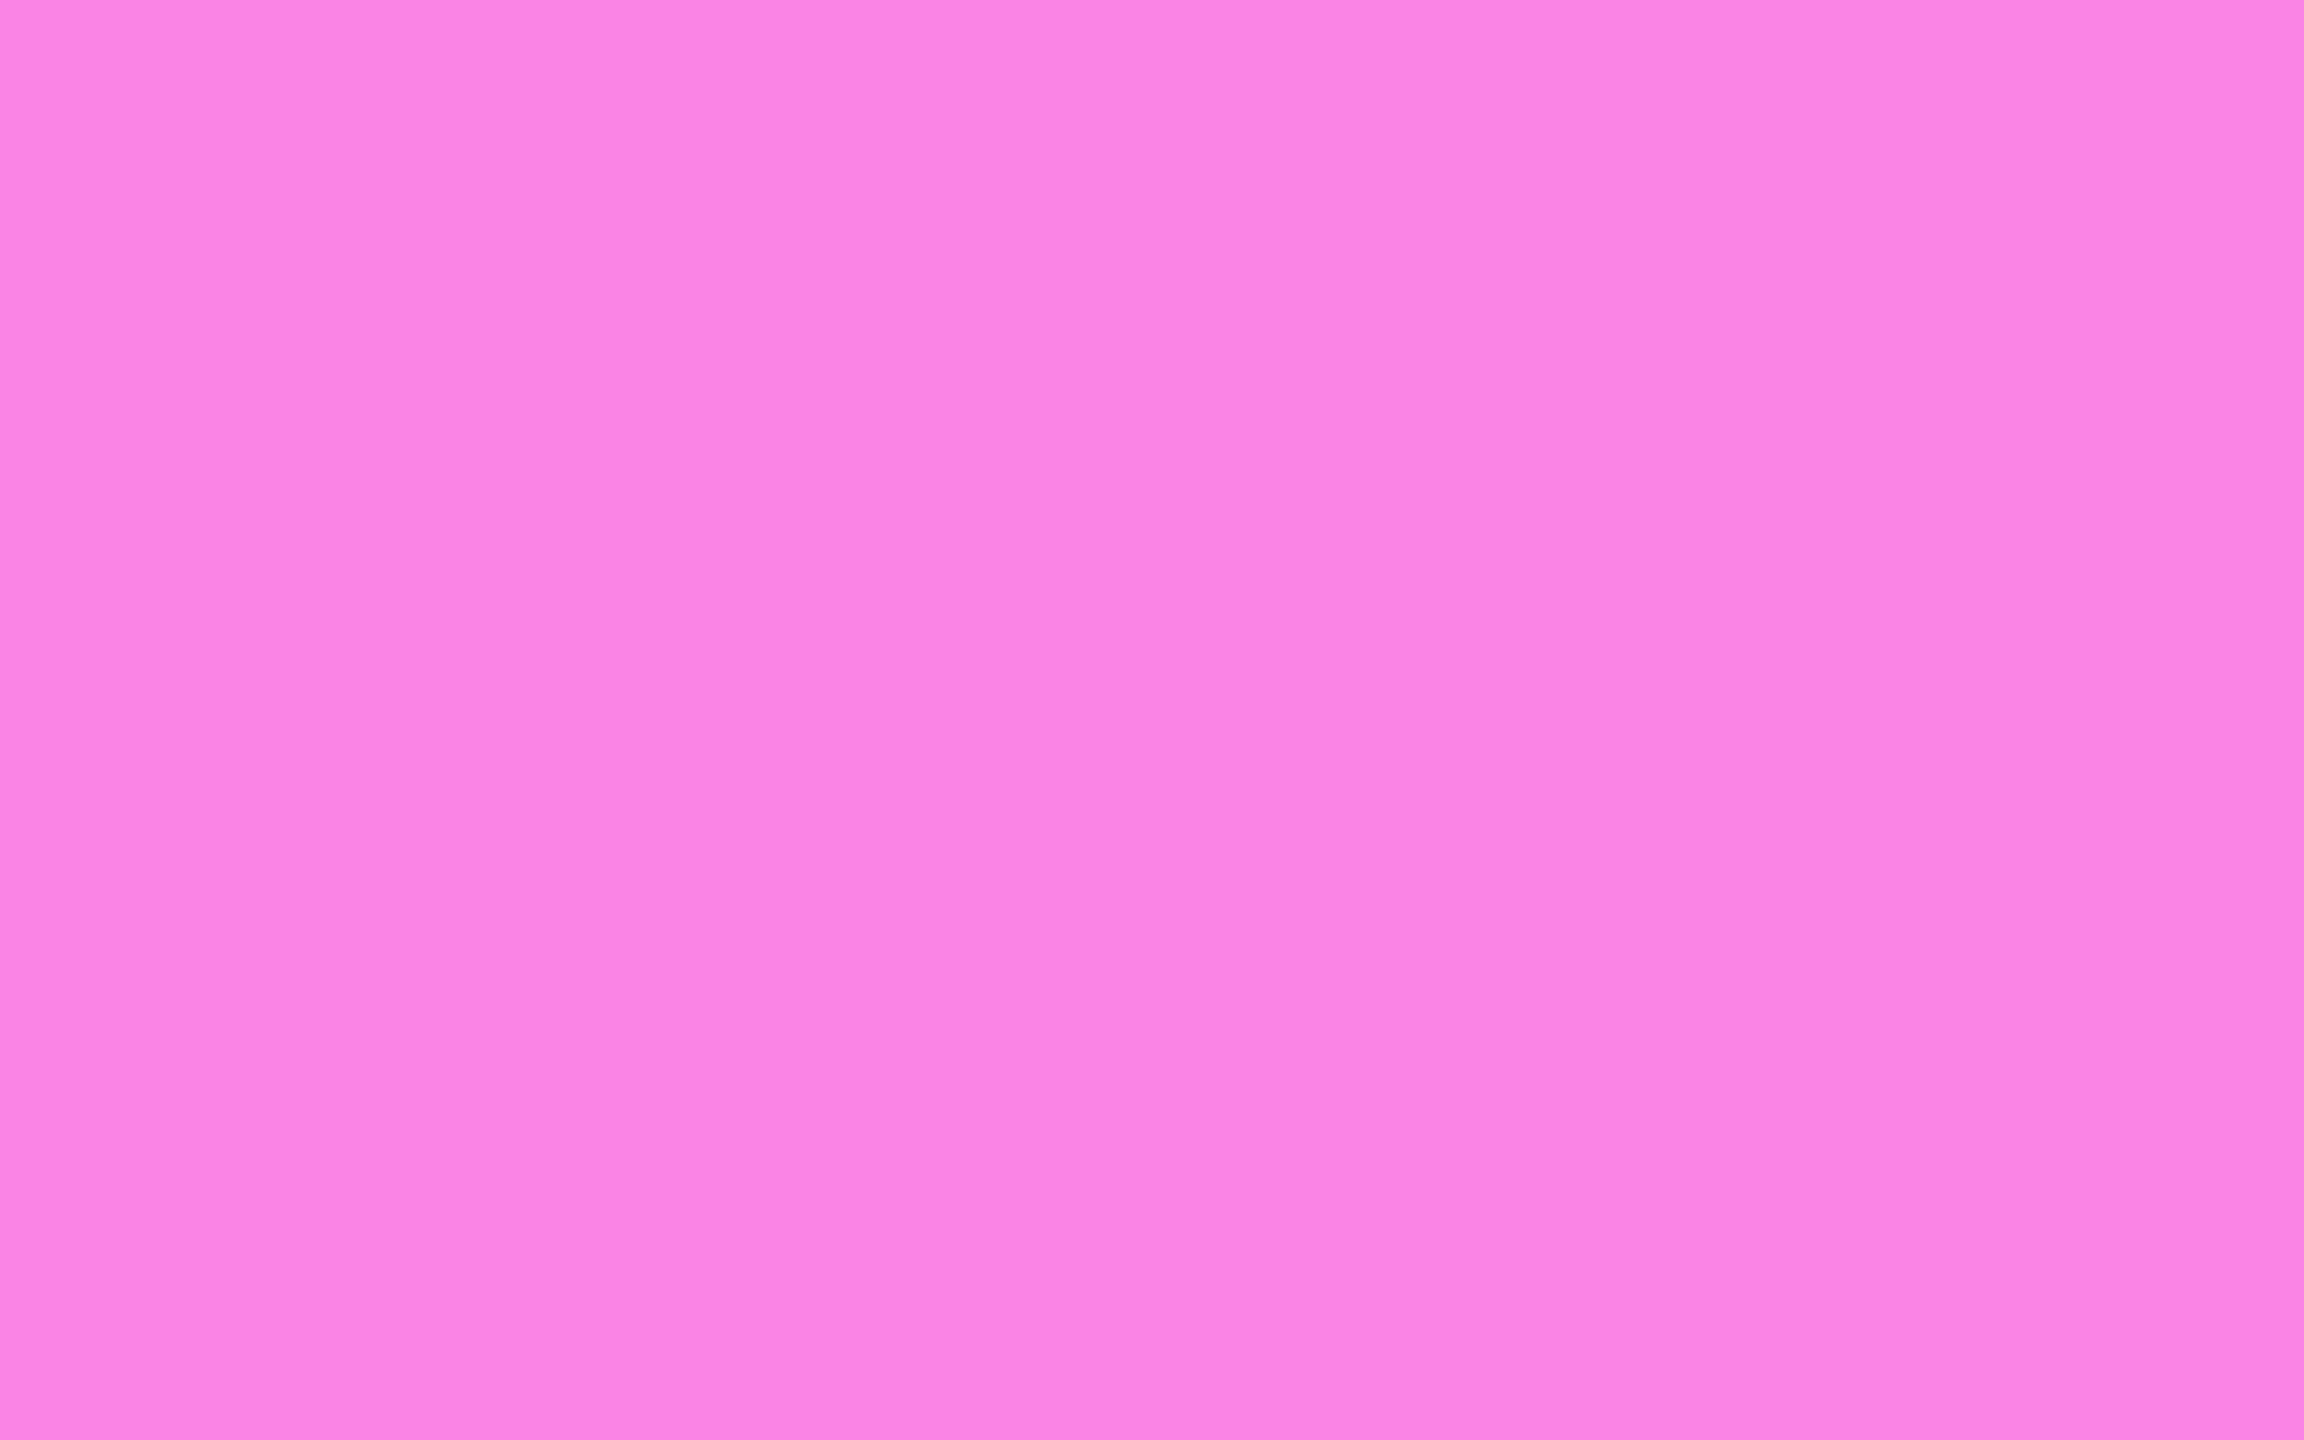 2304x1440 Pale Magenta Solid Color Background